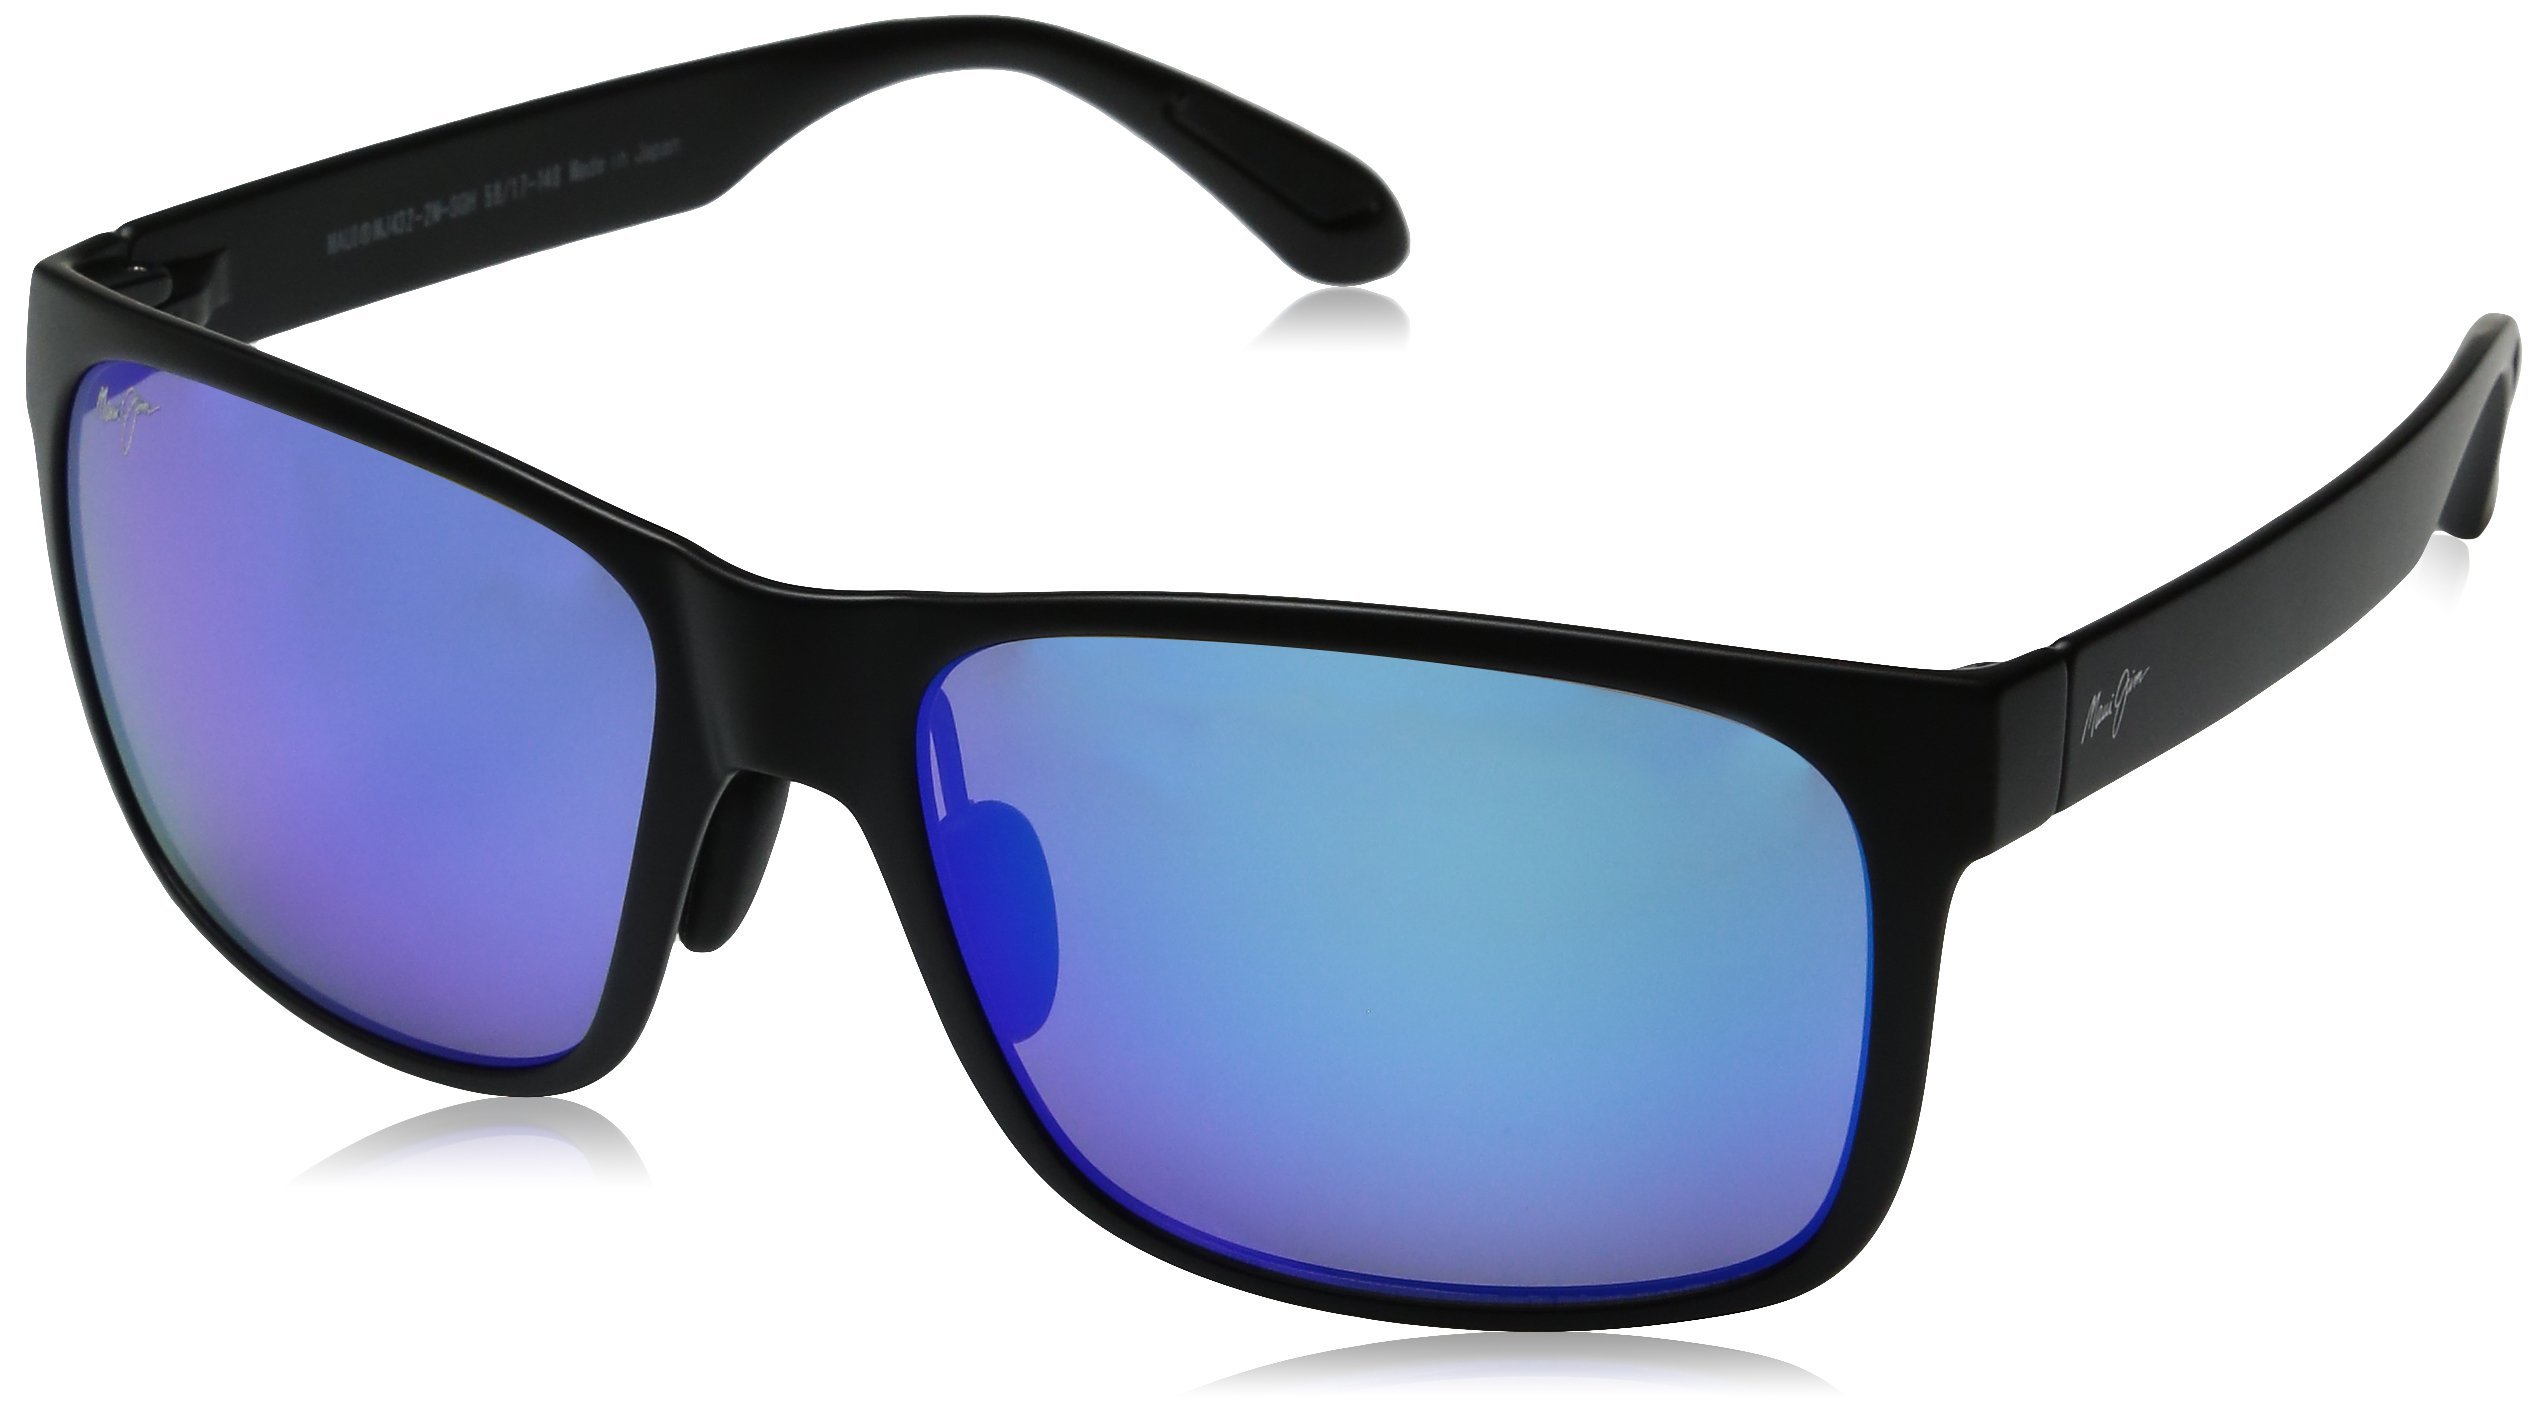 Maui Jim Red Sands Sunglasses - B432-2M Matte Black (Blue Hawaii Lens) - 59mm by Maui Jim